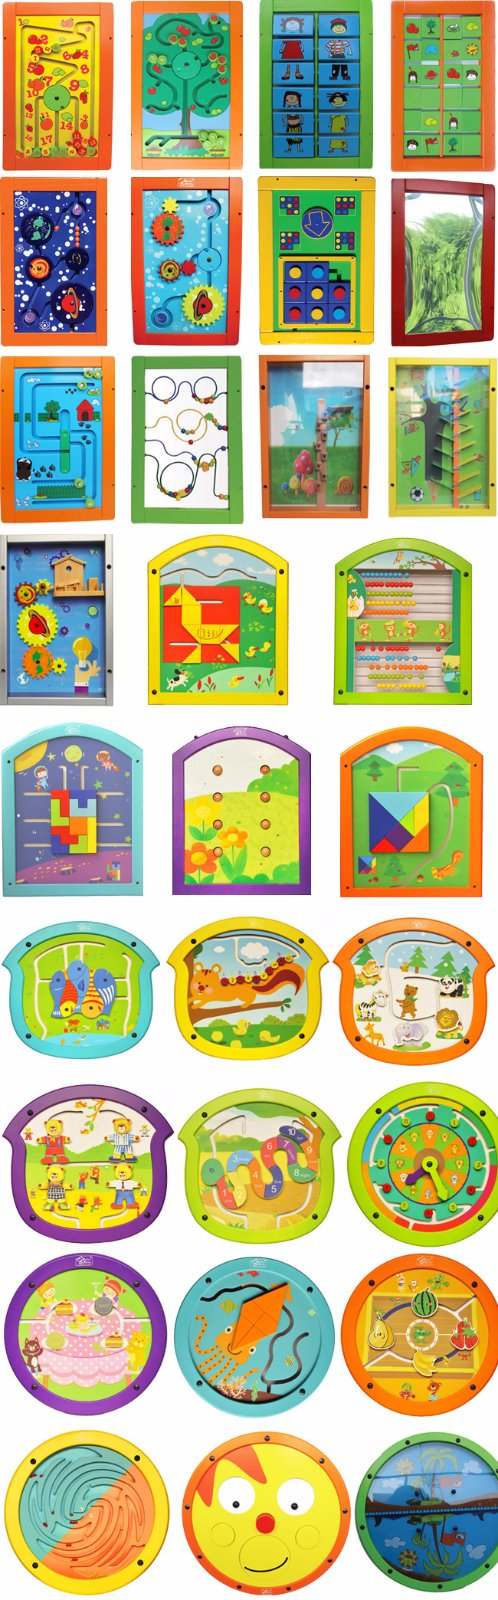 Wood Educational Wall Mounted Play Board for Children Learning